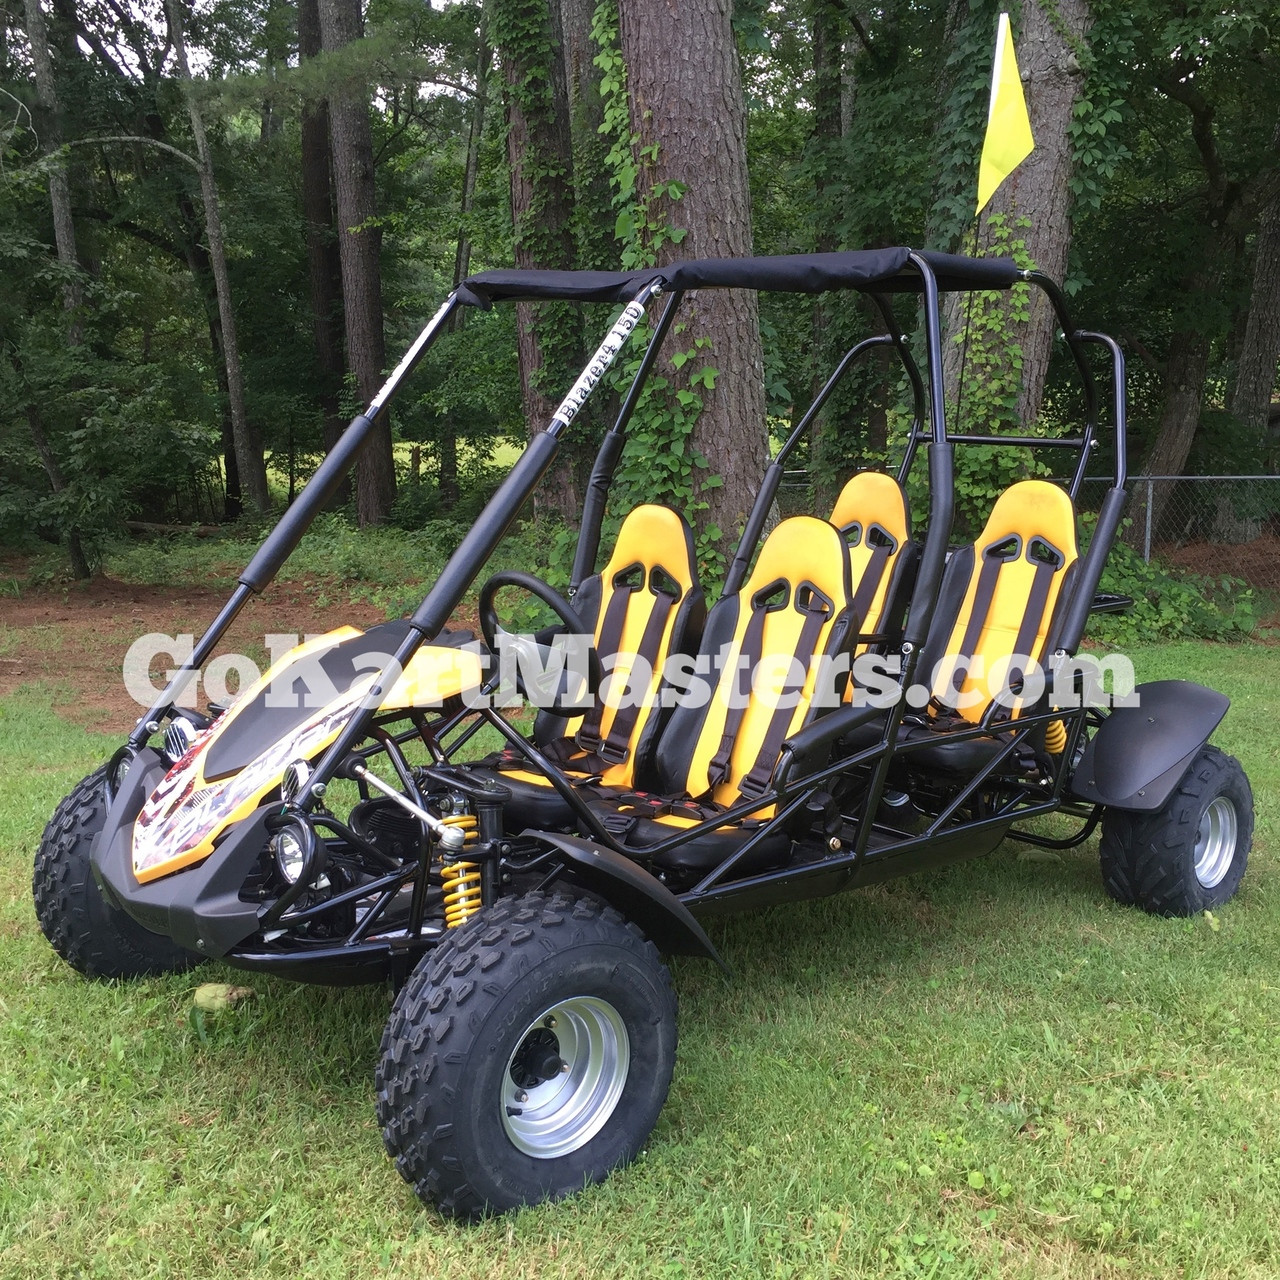 TrailMaster Blazer4 150 Go Kart - Yellow - 4 Seats